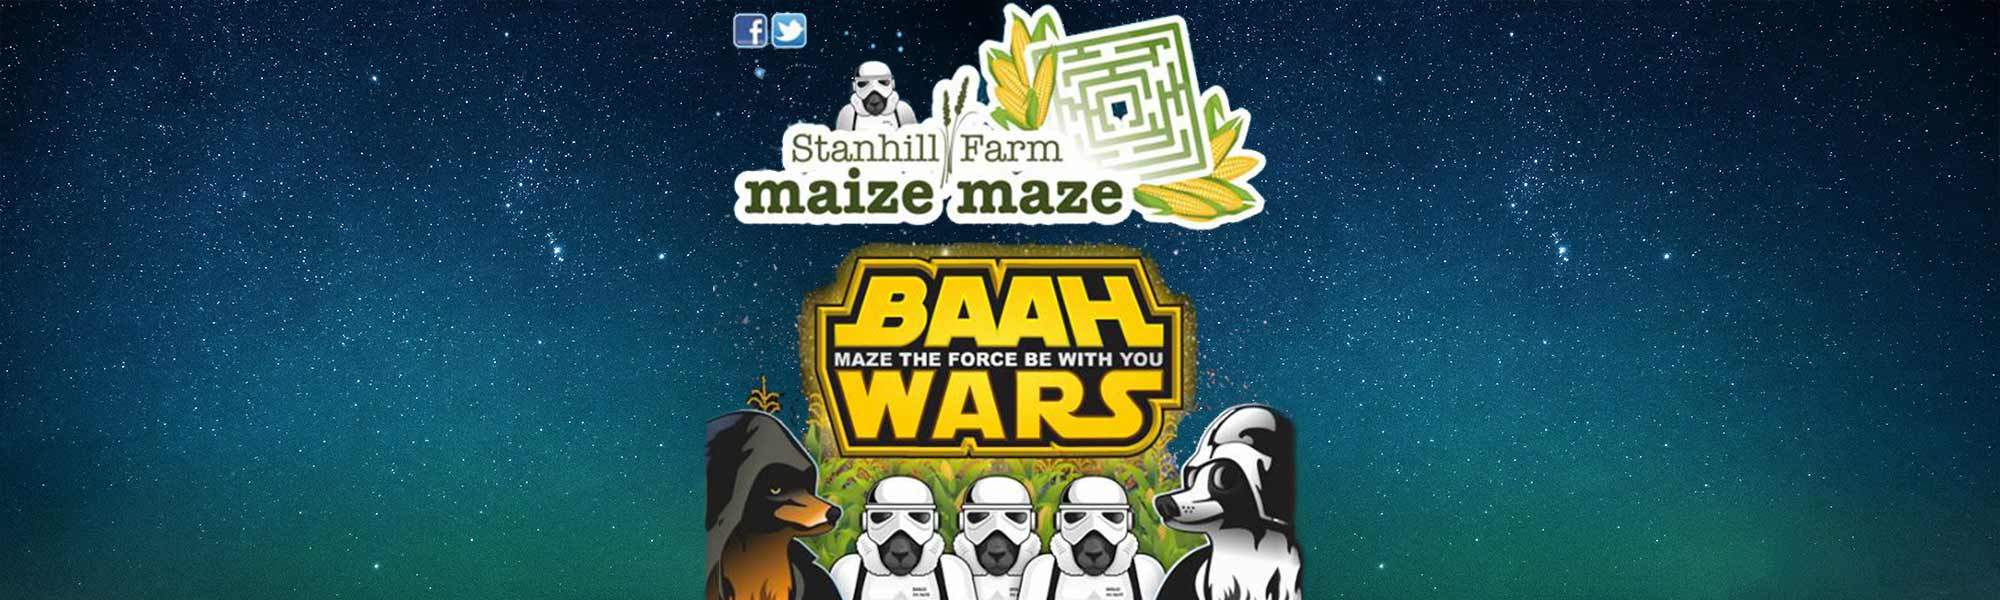 Events for Children Maize Maze at Stanhill Farm - Out of this World Family Fun, Up to 17% off